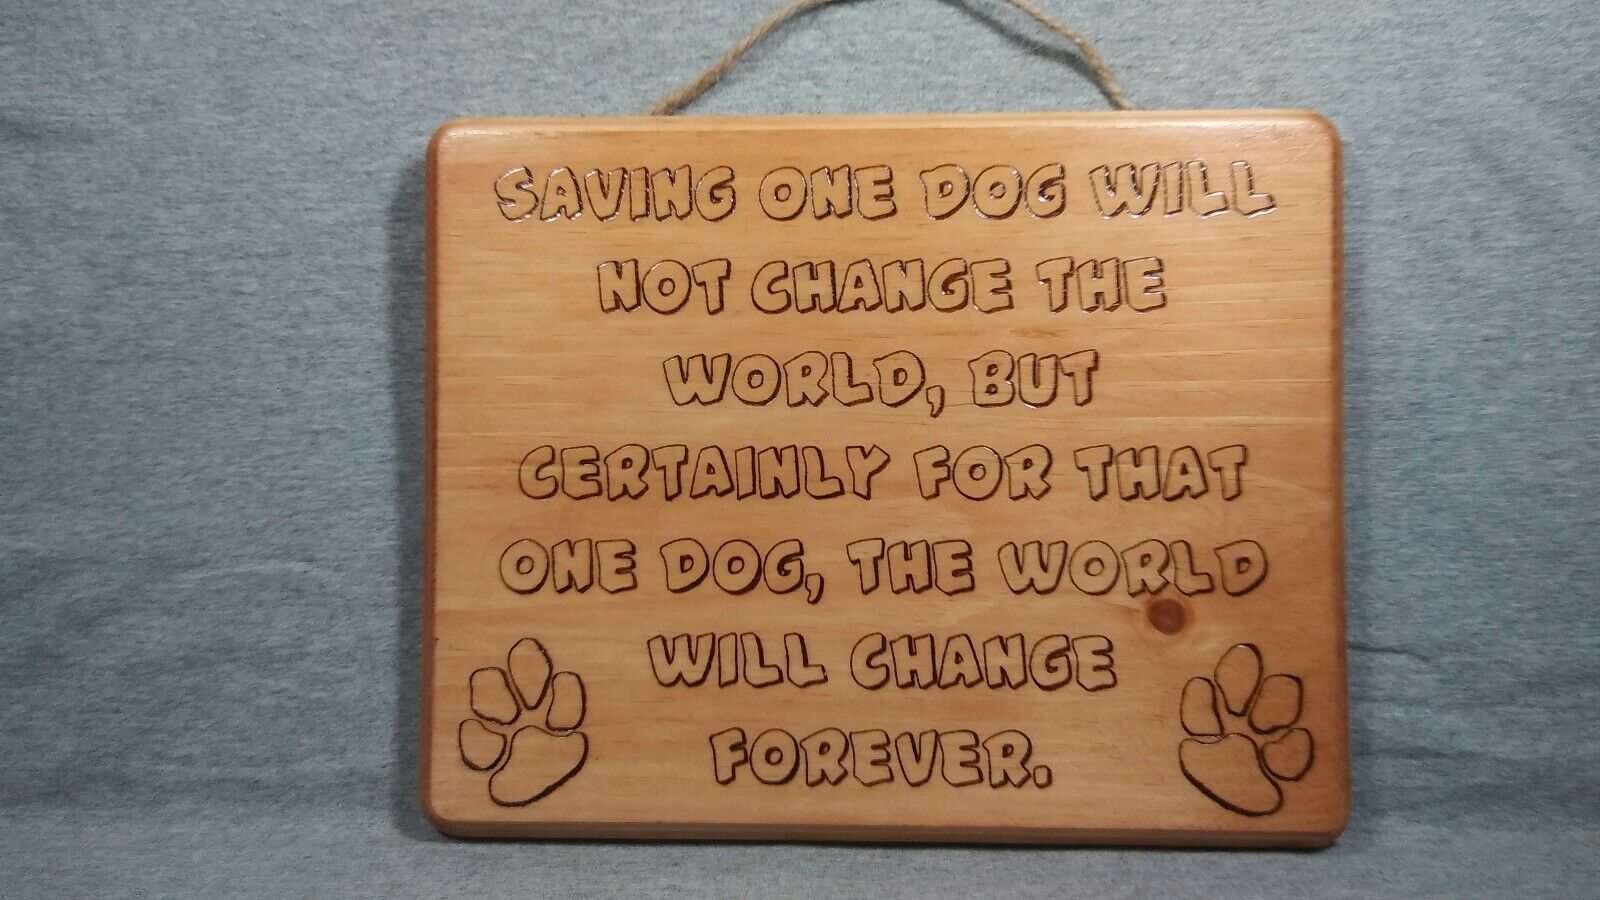 SAVING ONE DOG Handmade Wood Burned Art Pyrography Office Plaque